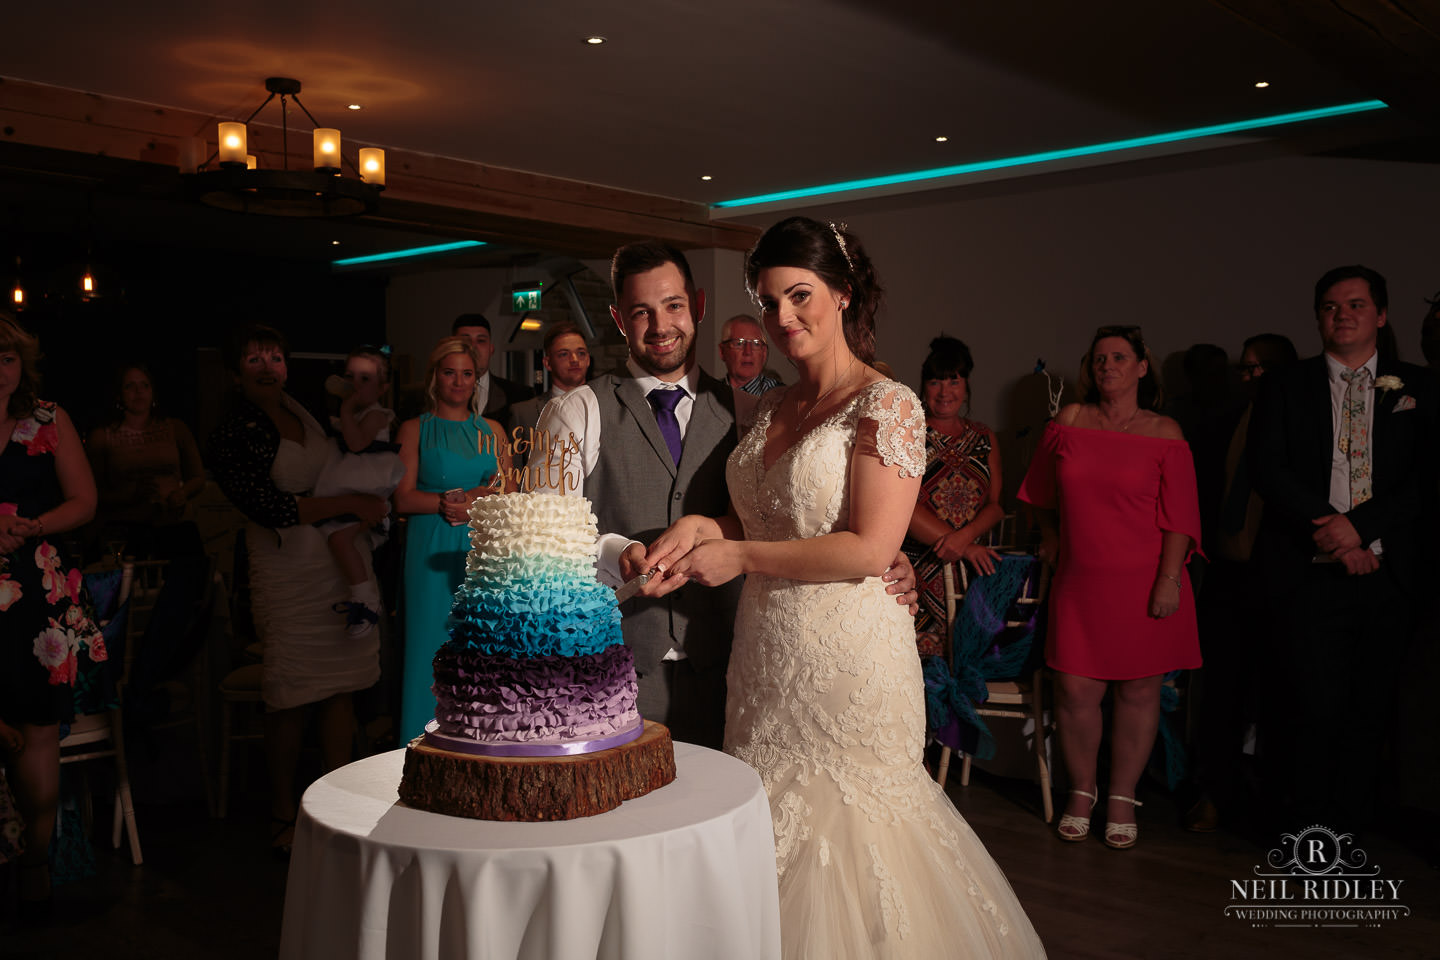 Bride and groom cut the cake on the dance floor at The Mill at Conder Green